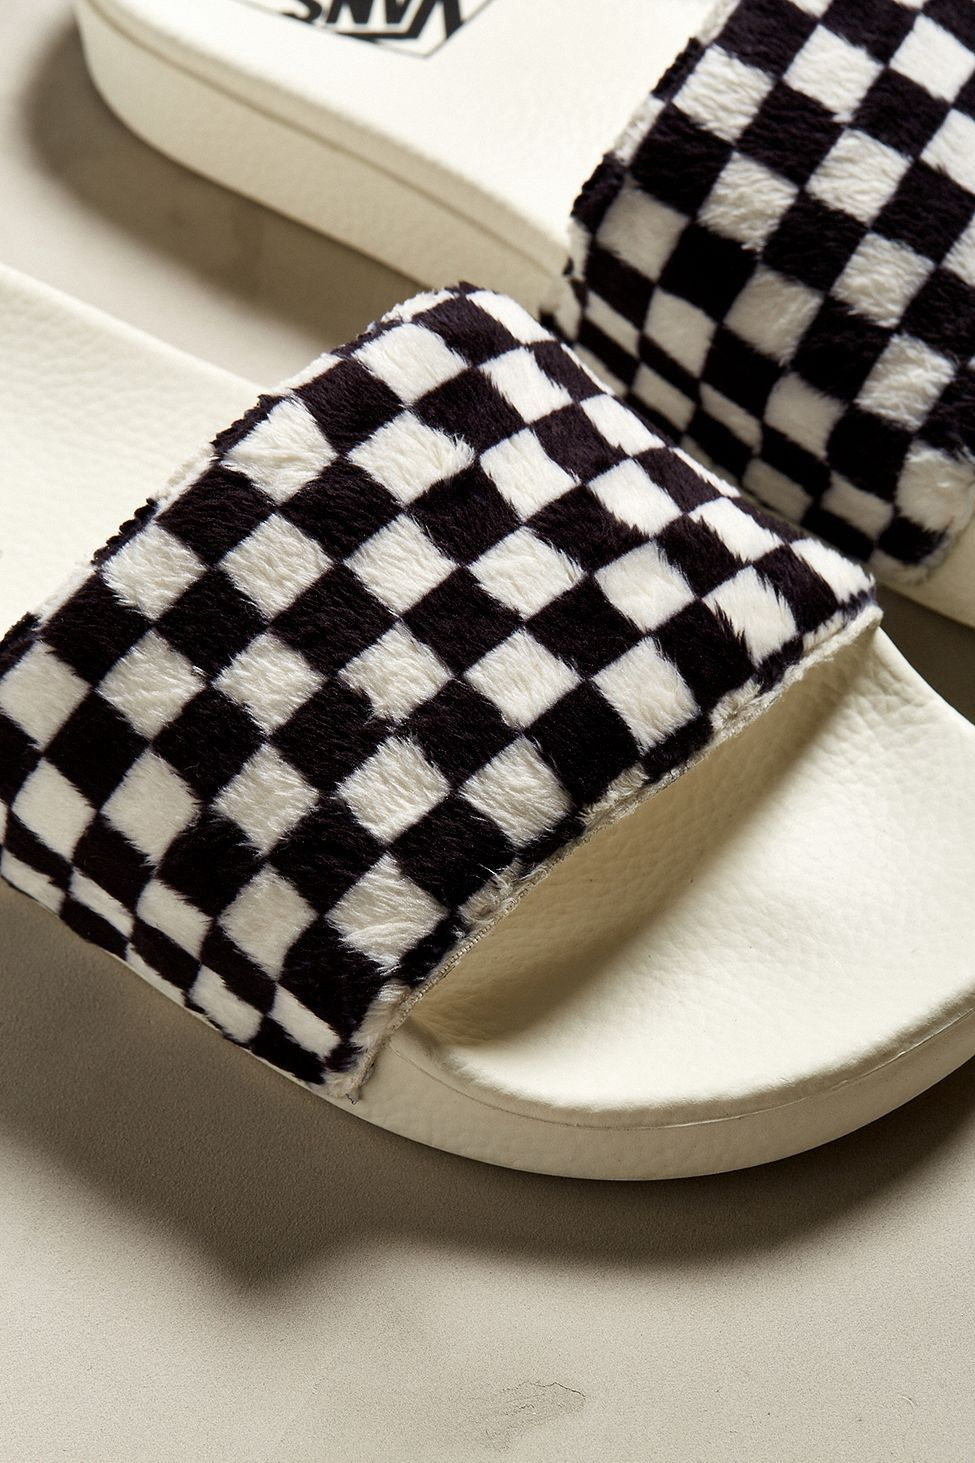 c7227db6d54 Urban Outfitters Vans Slide-On Checkerboard Sherpa Sandal - M 10 W 11.5